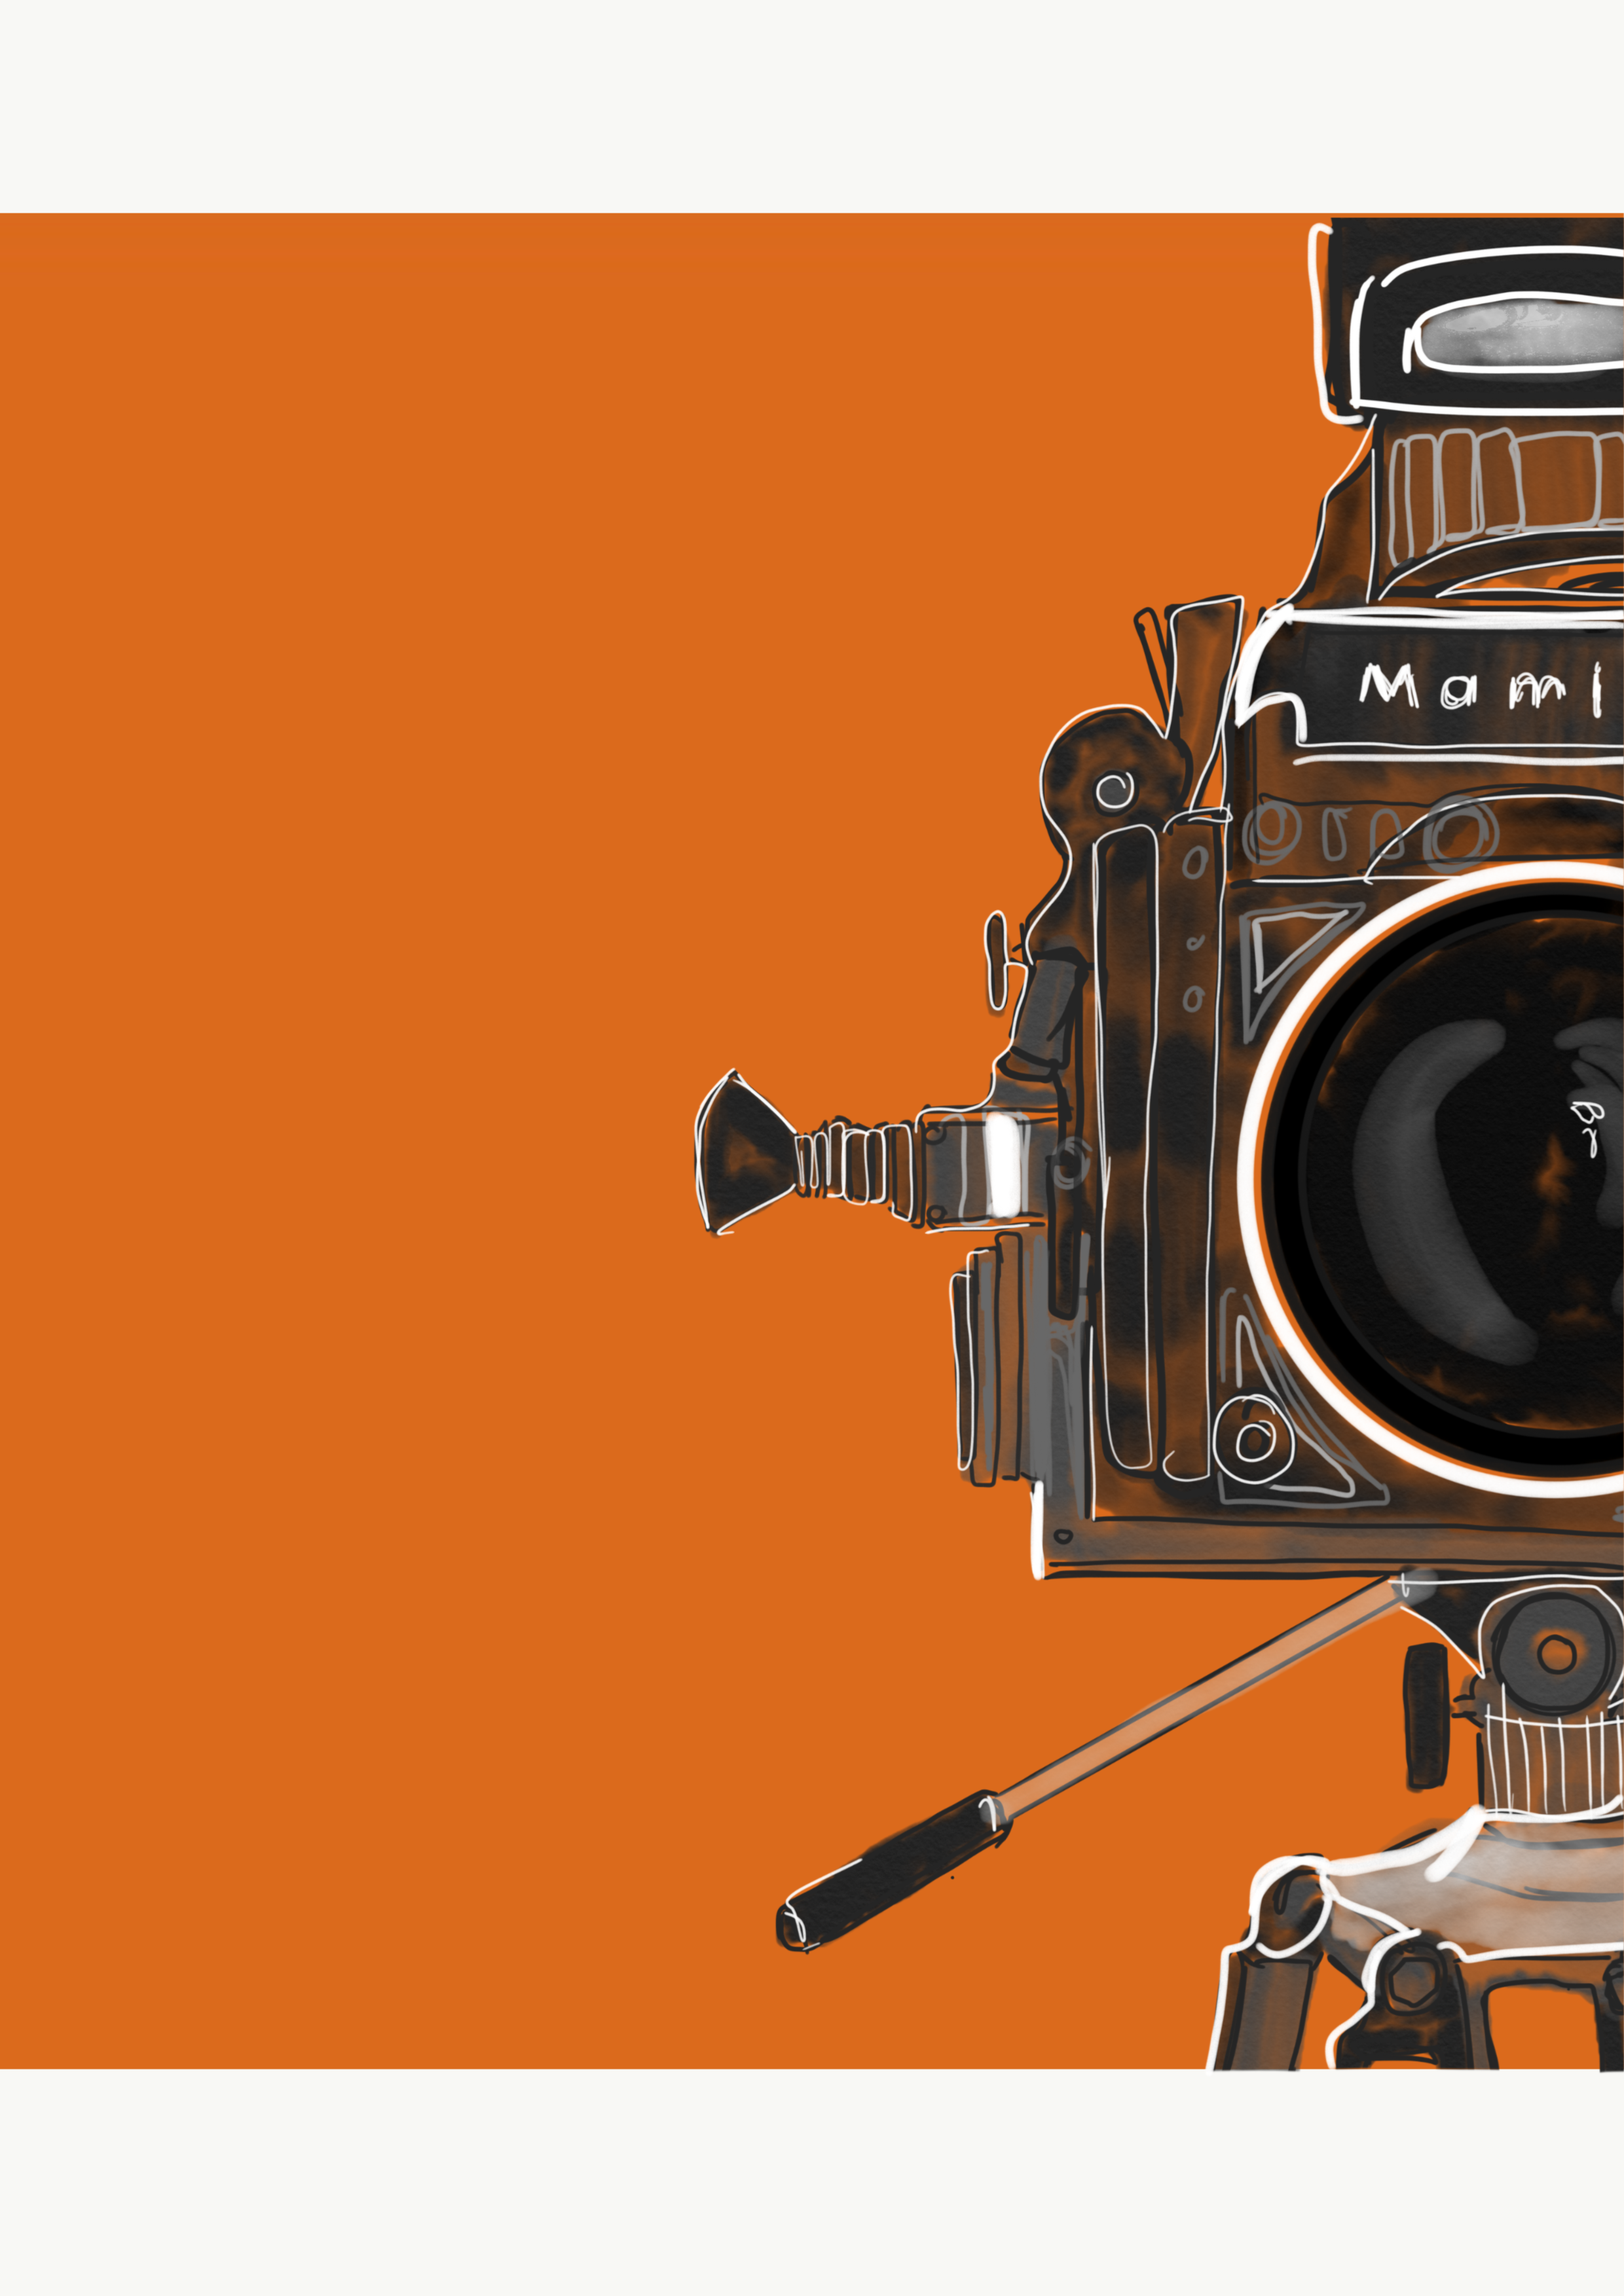 'Lights, Camera, Action' by Chris Haines